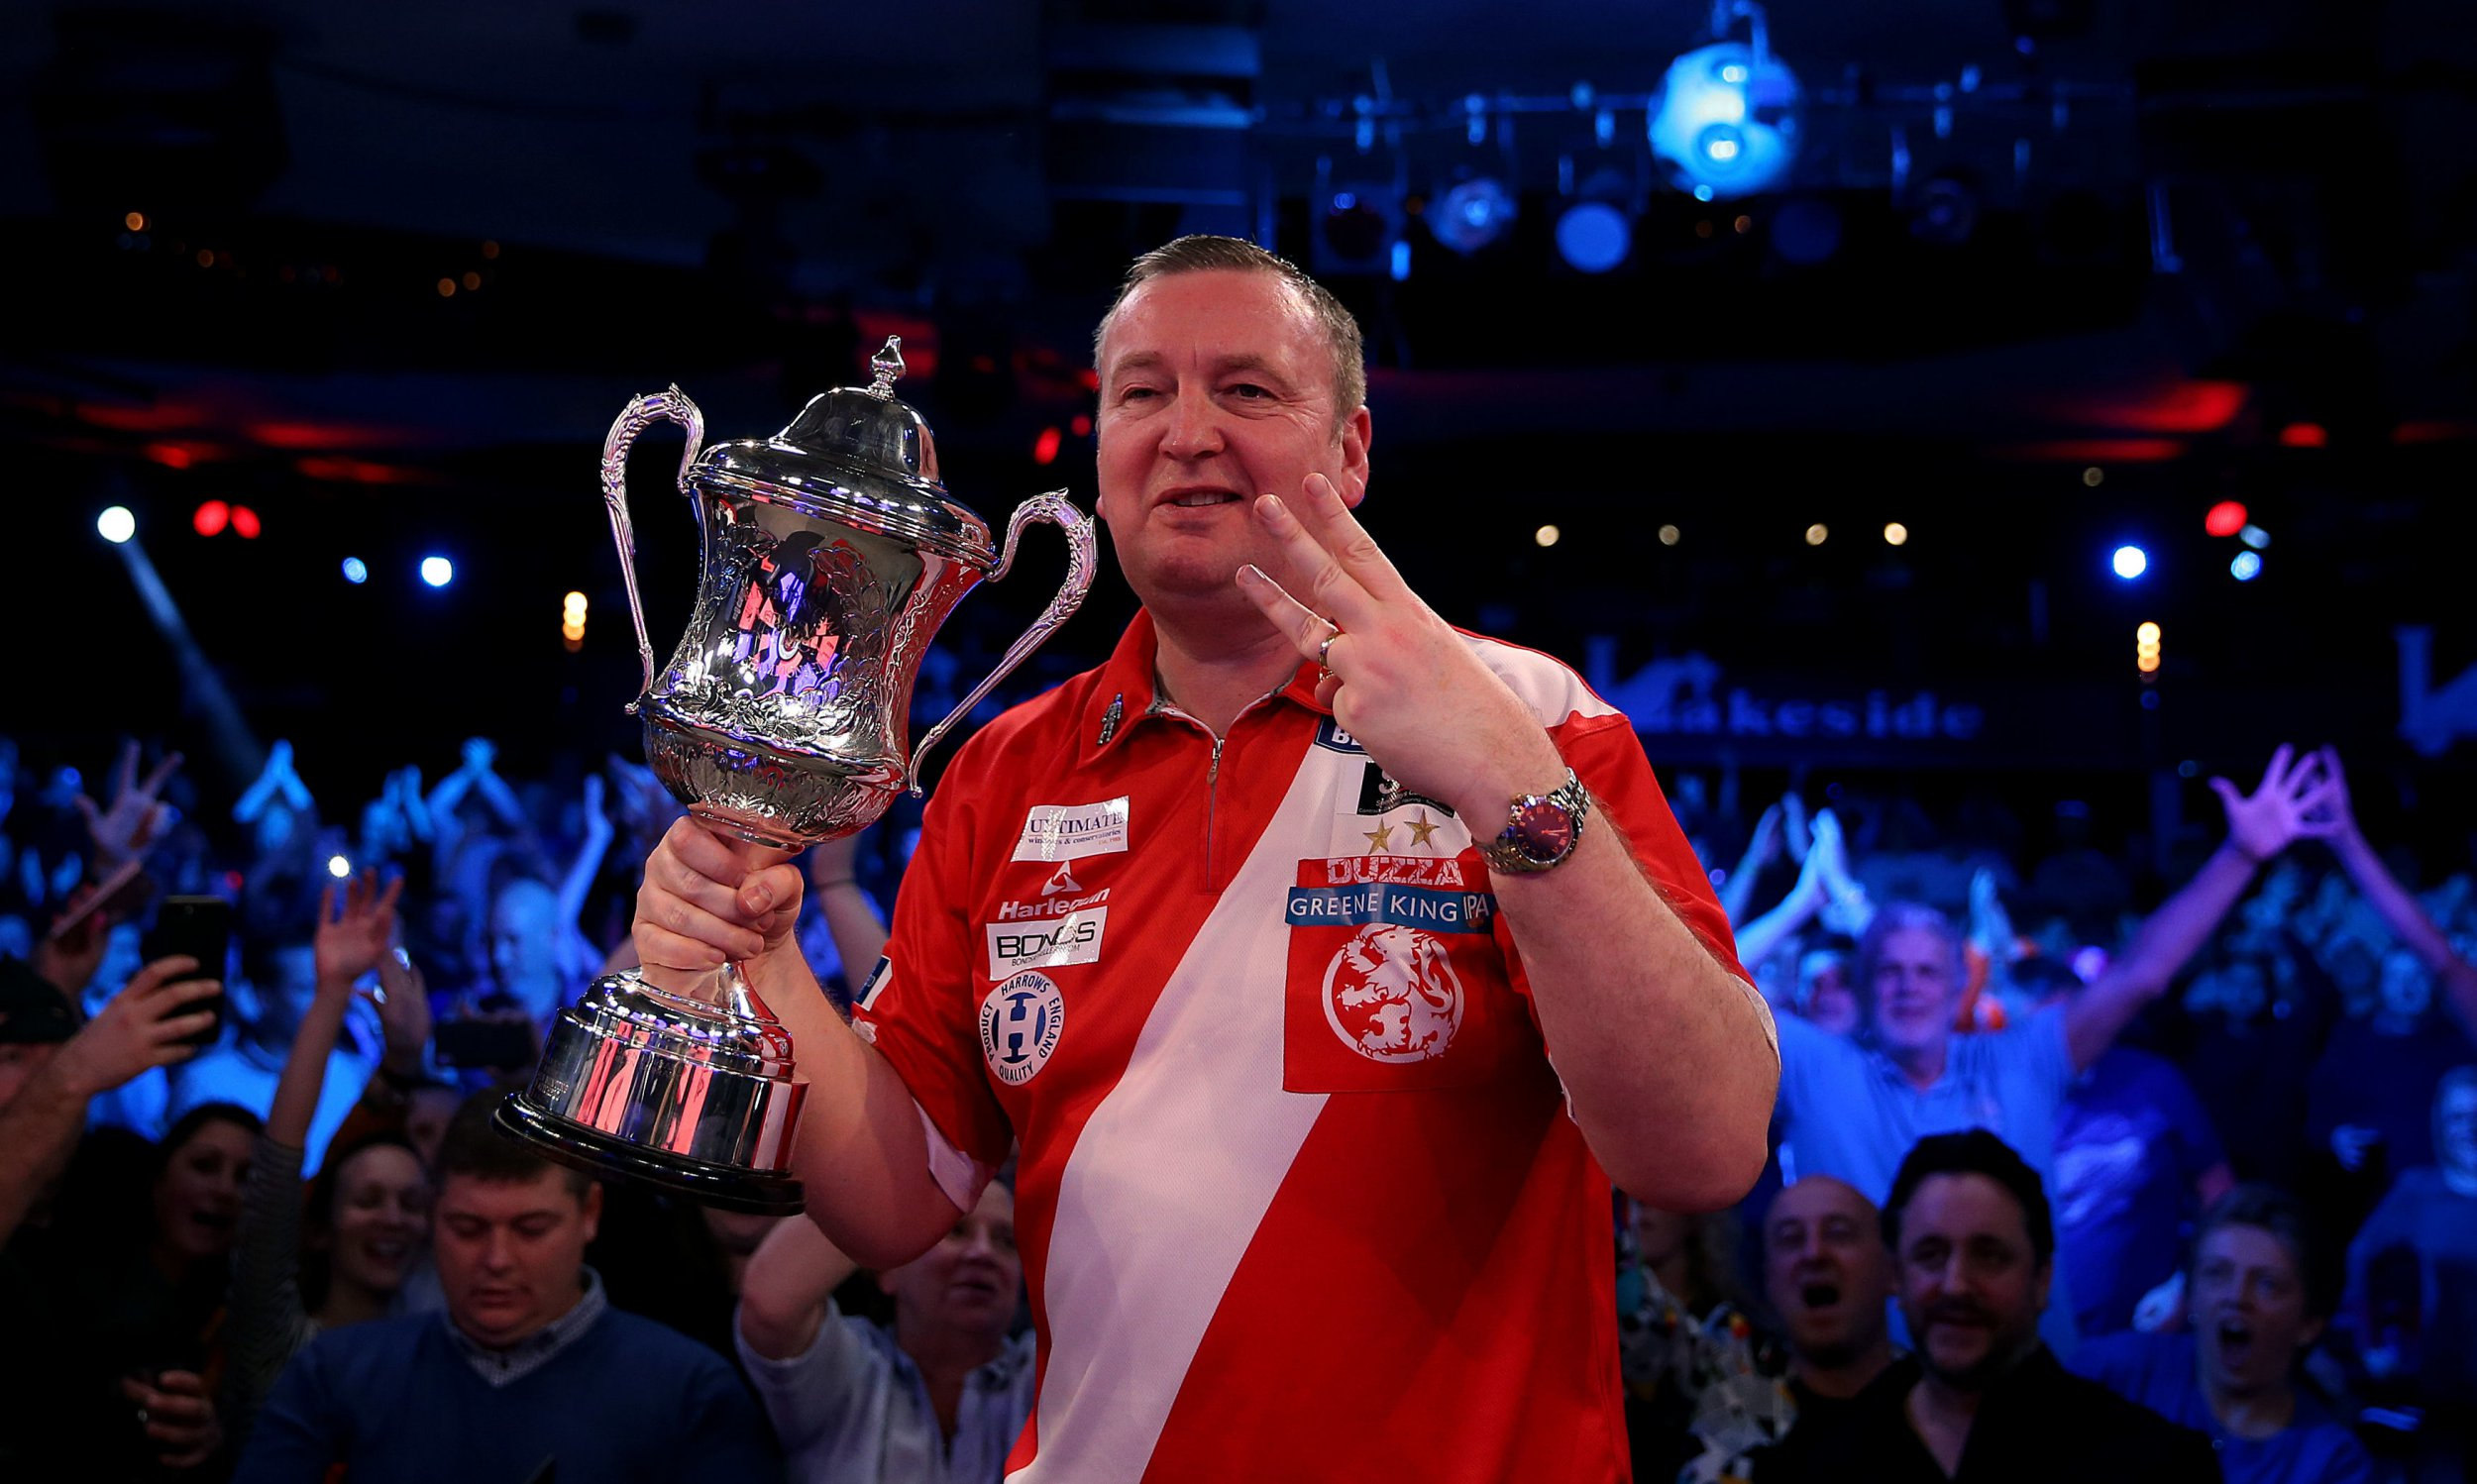 PDC Q School entries confirmed with Glen Durrant, Scott Waites, Lisa Ashton and Mark McGeeney in the field